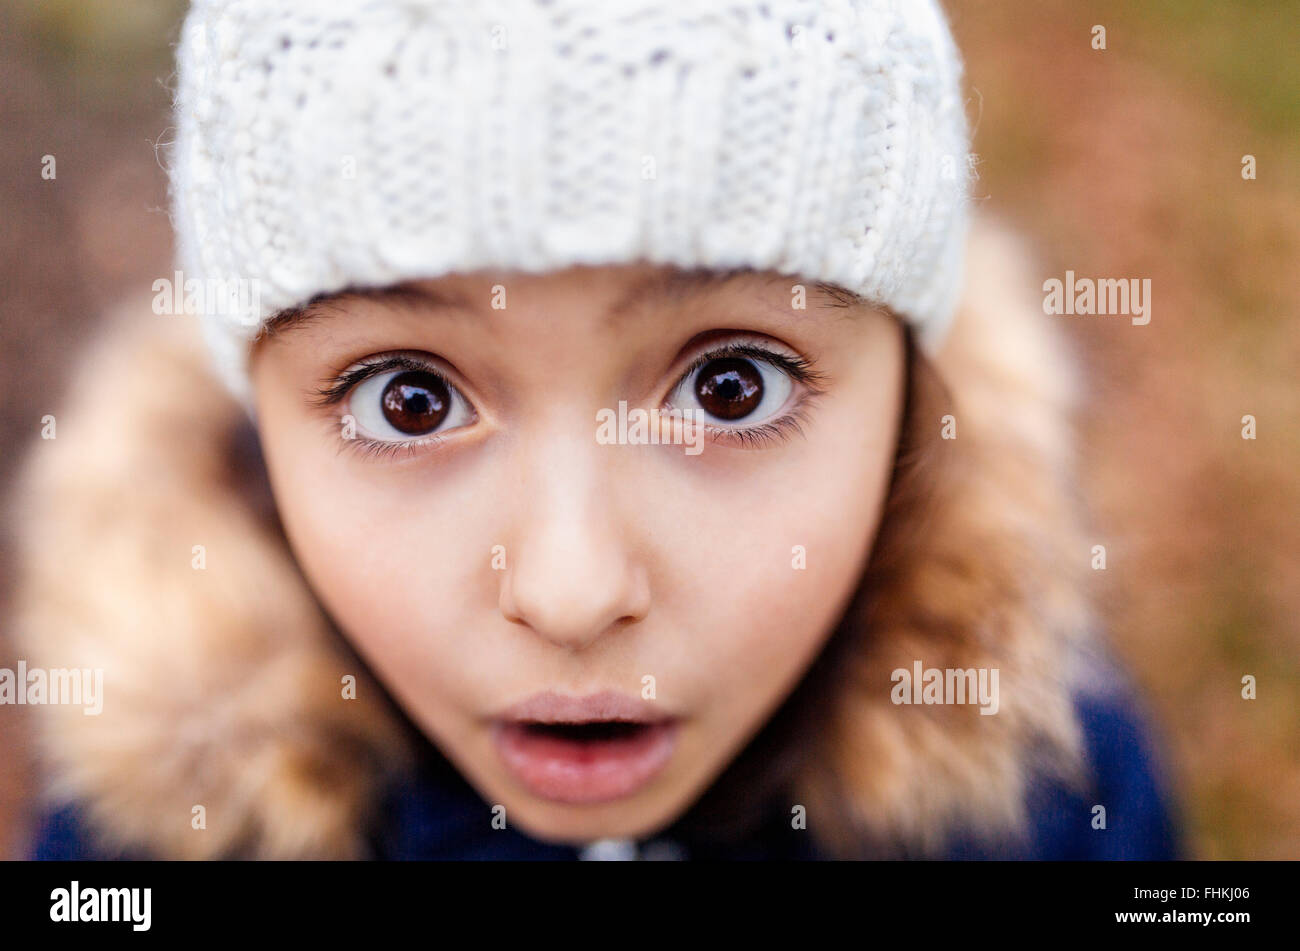 Portrait of little girl with eyes wide open - Stock Image